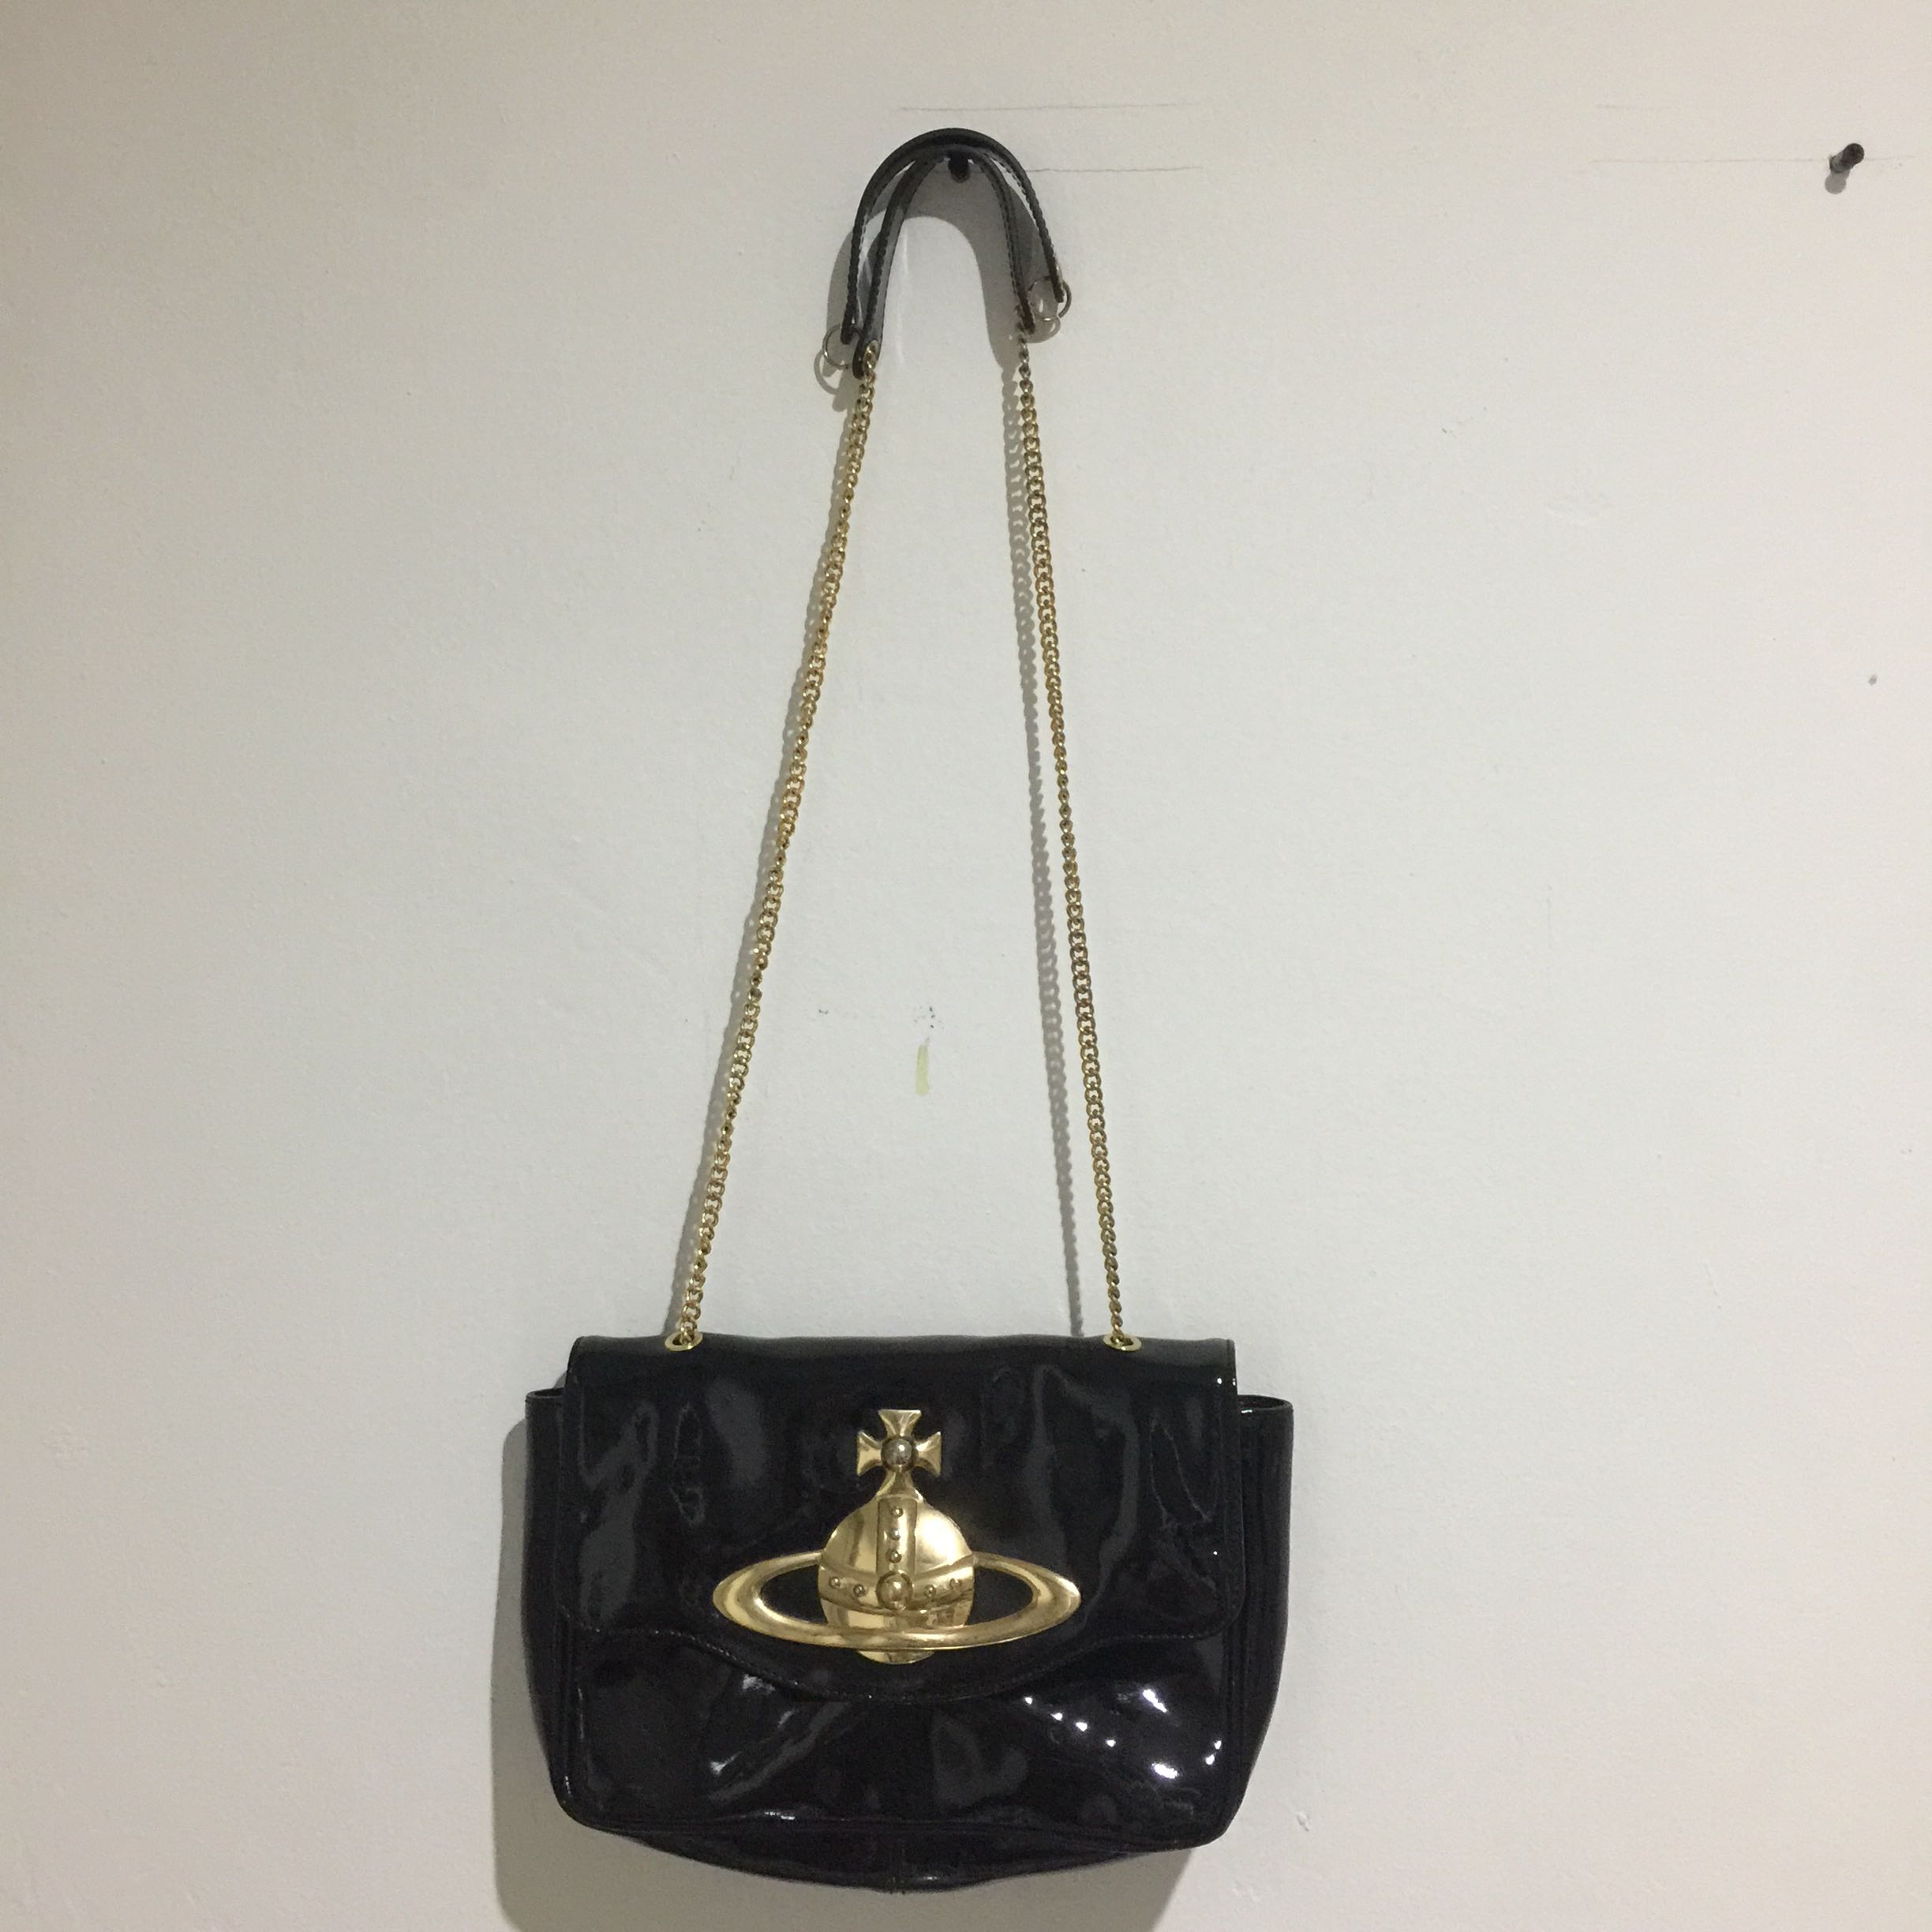 aceb61a421 Vivienne Westwood Bag, Women's Fashion, Bags & Wallets on Carousell